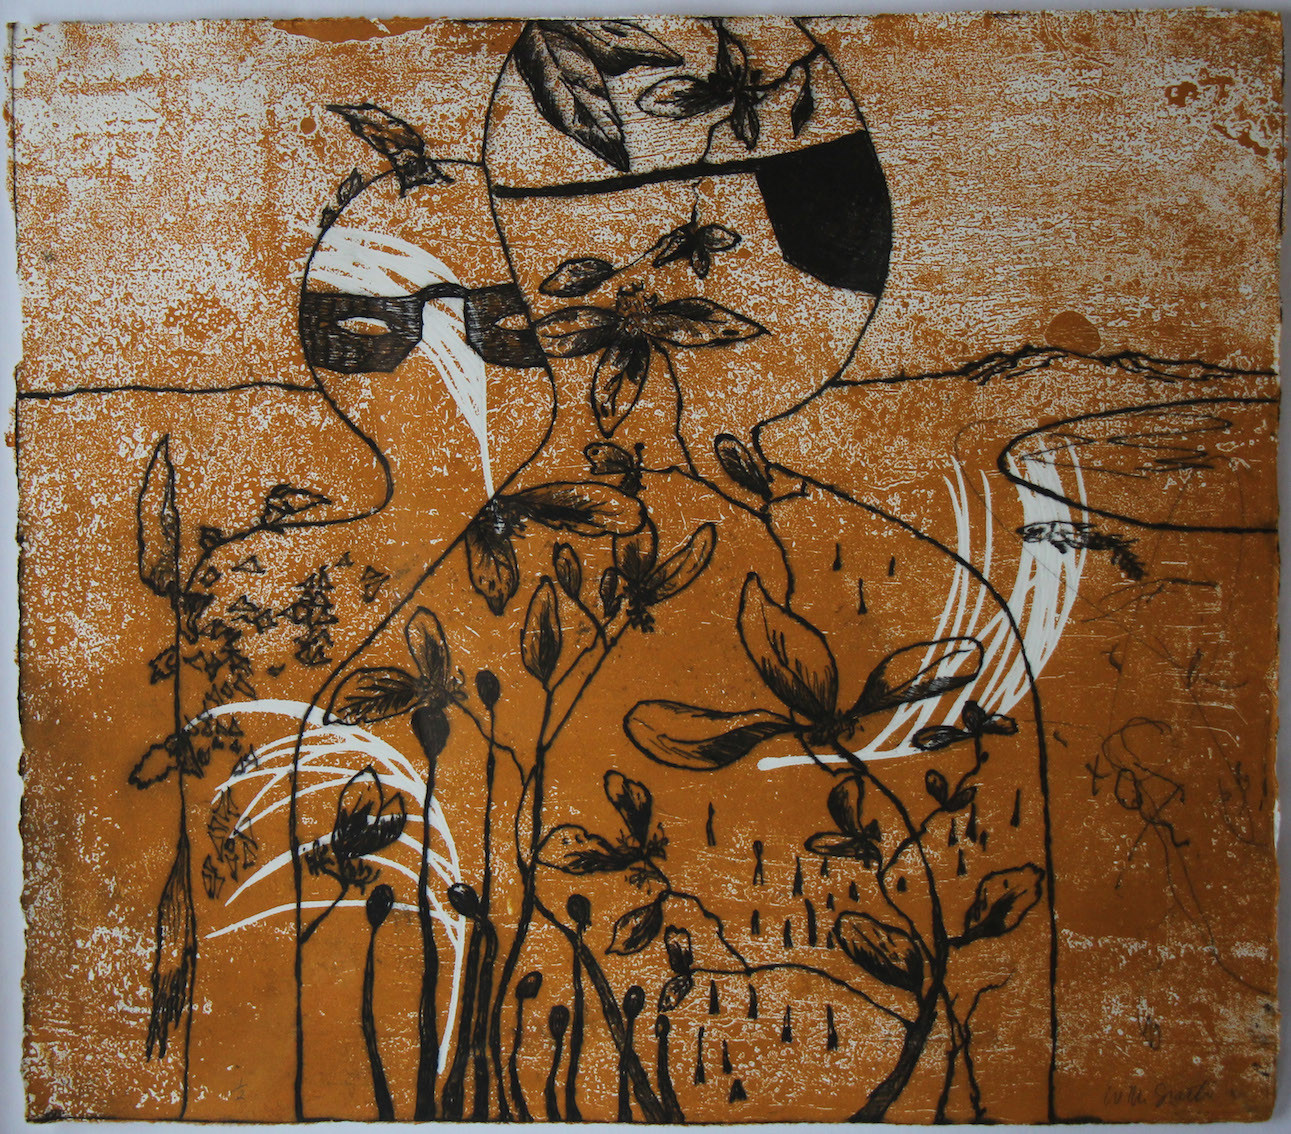 Wendy McGrath 'Looking for the mangrove [the keepers]' drypoint etching + copper etching (two plates) with stencil 47x 54cm framed - sold $500